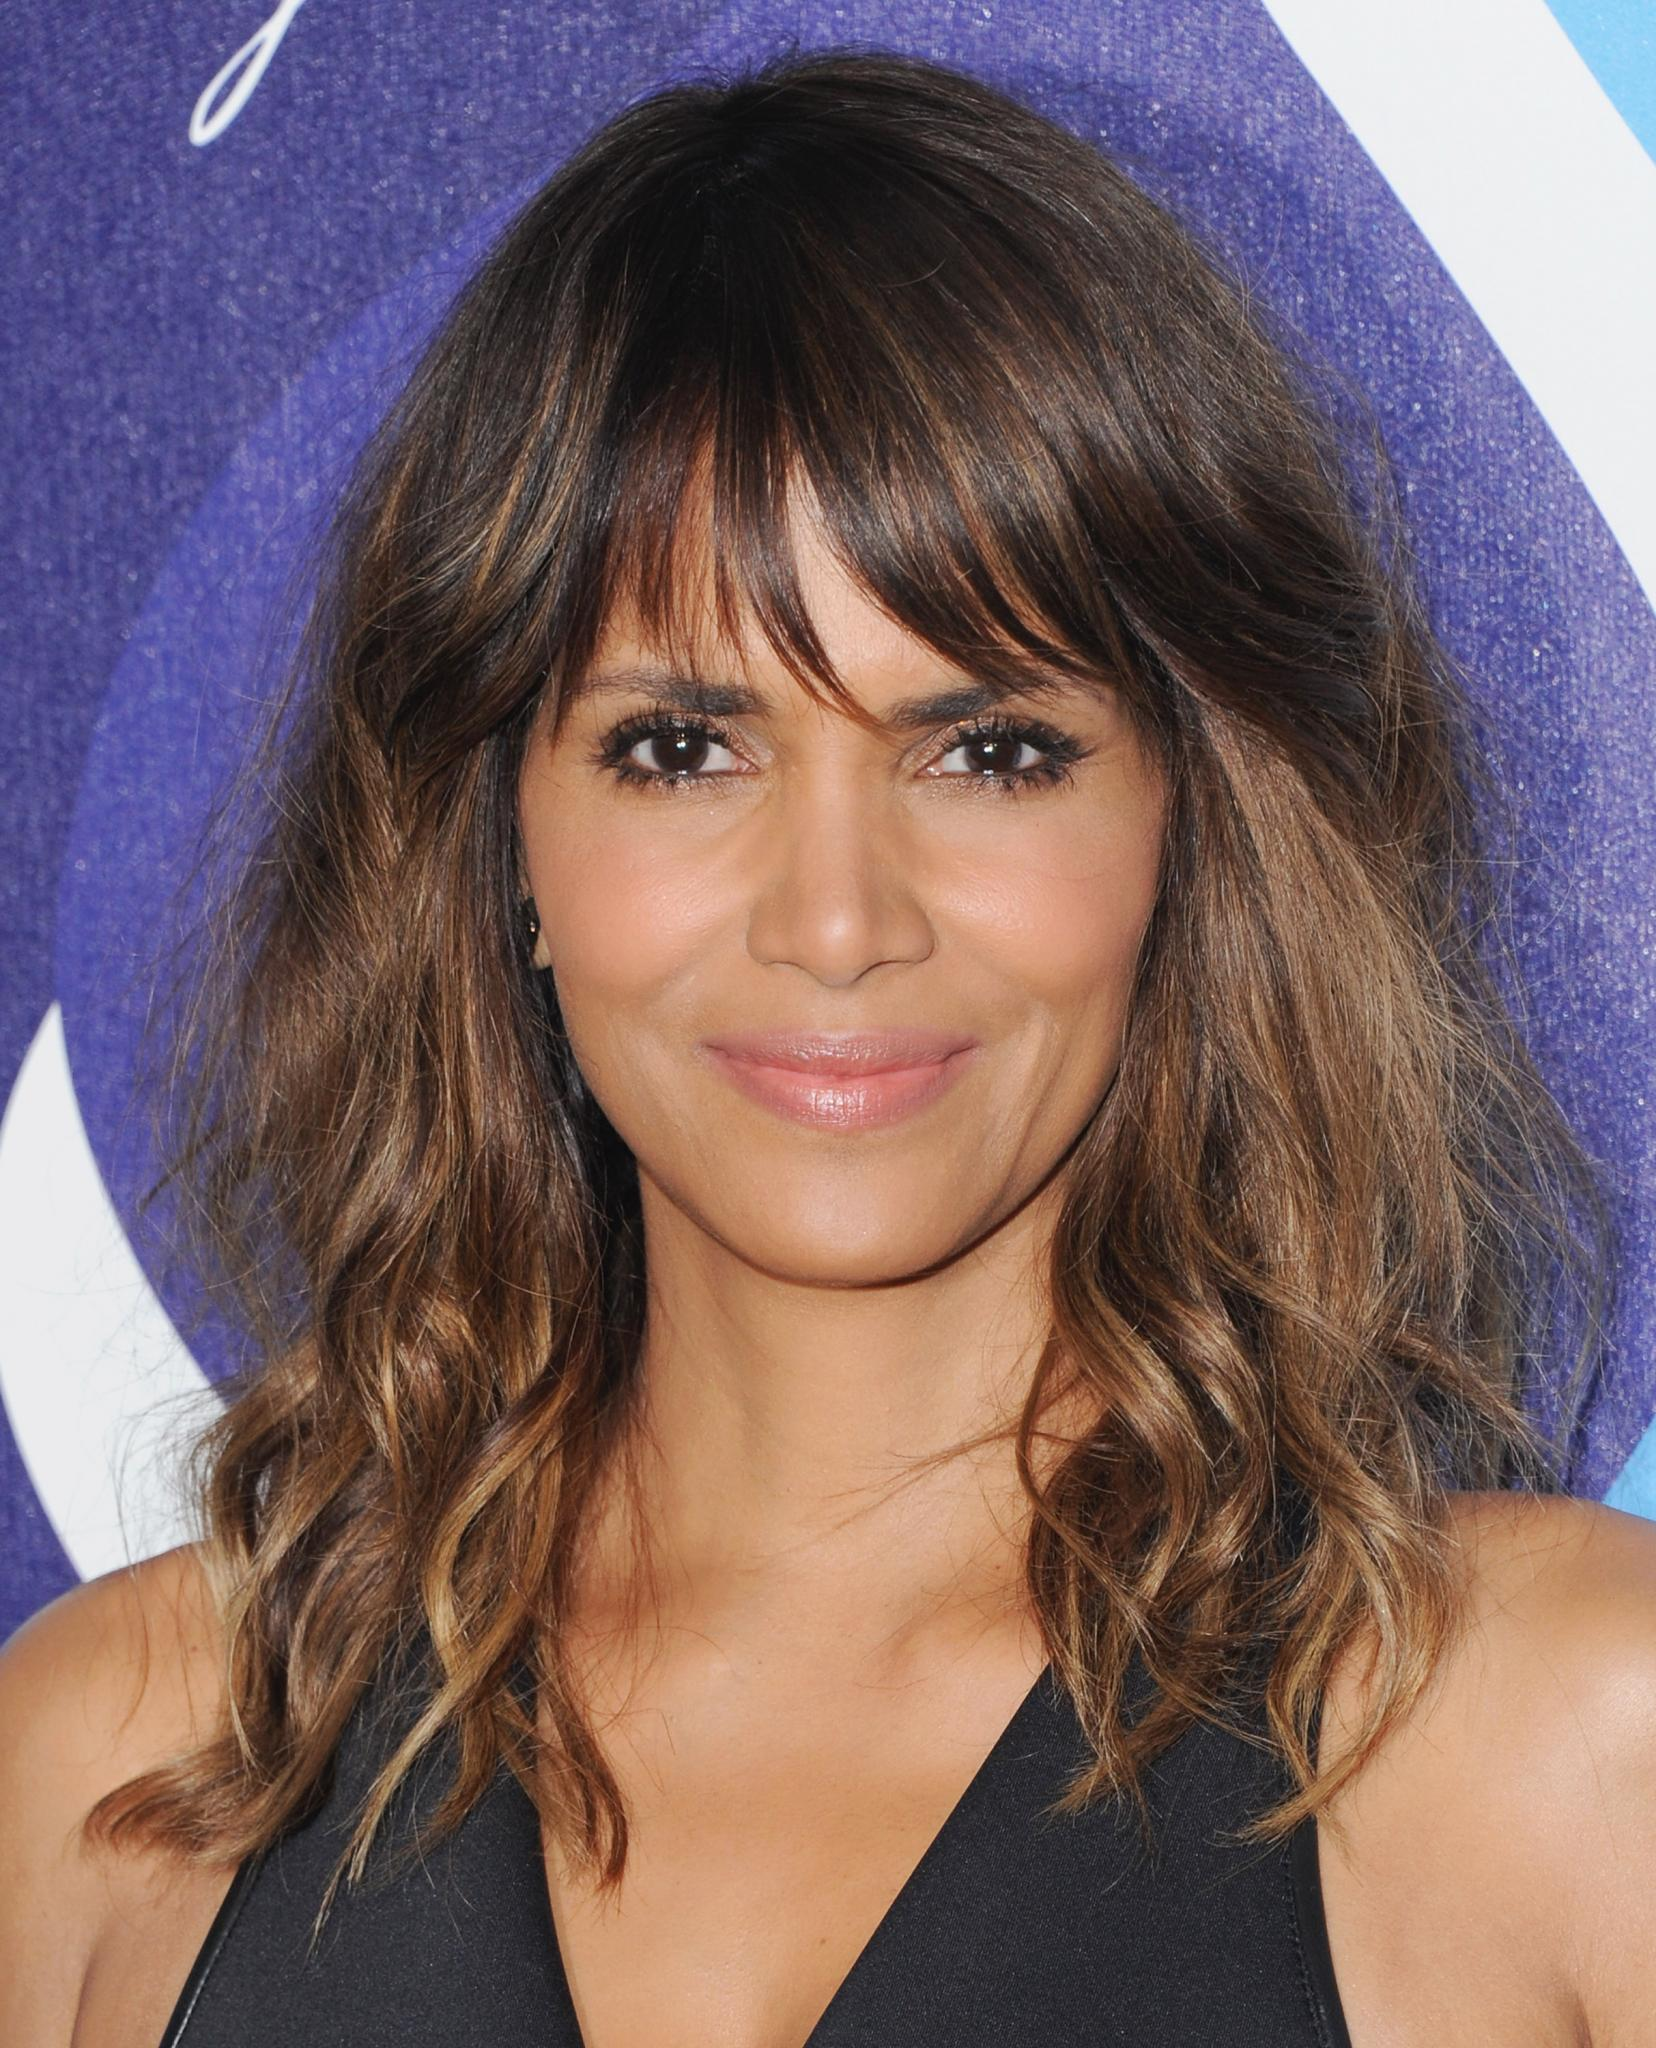 Halle Berry Joins Forces With Christian Louboutin, Saks Fifth Avenue For Fashion With a Cause